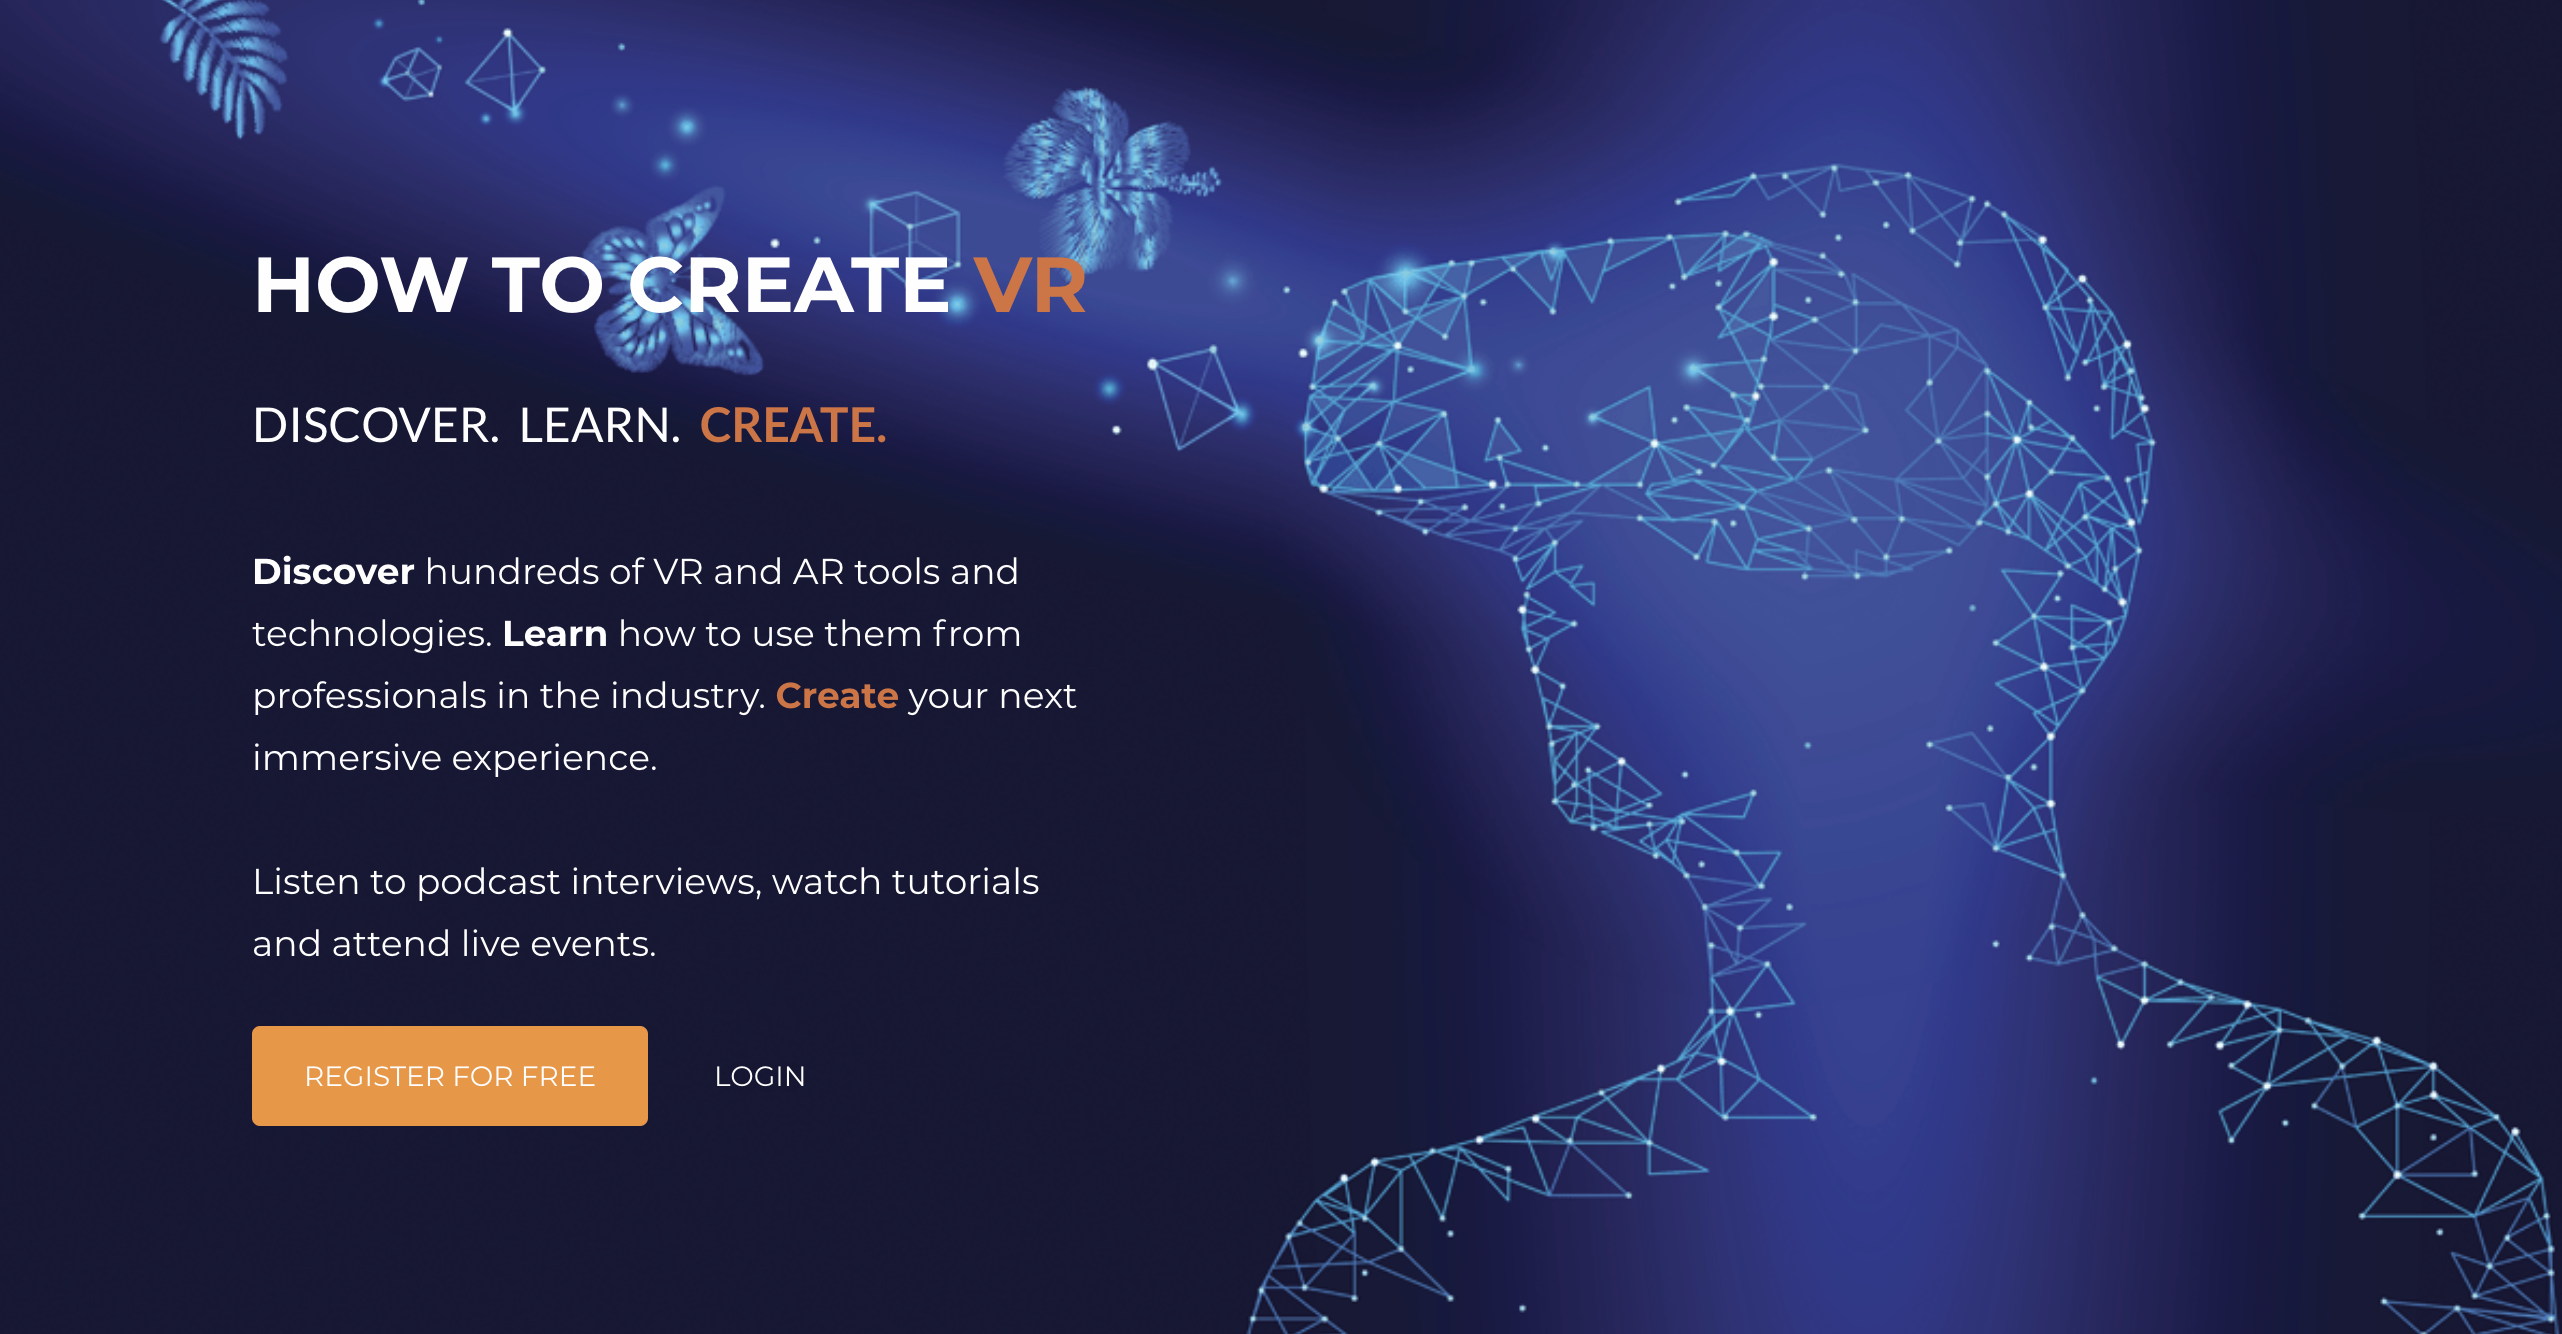 HumanEyes Technologies Announces Acquisition of HowToCreateVR.com